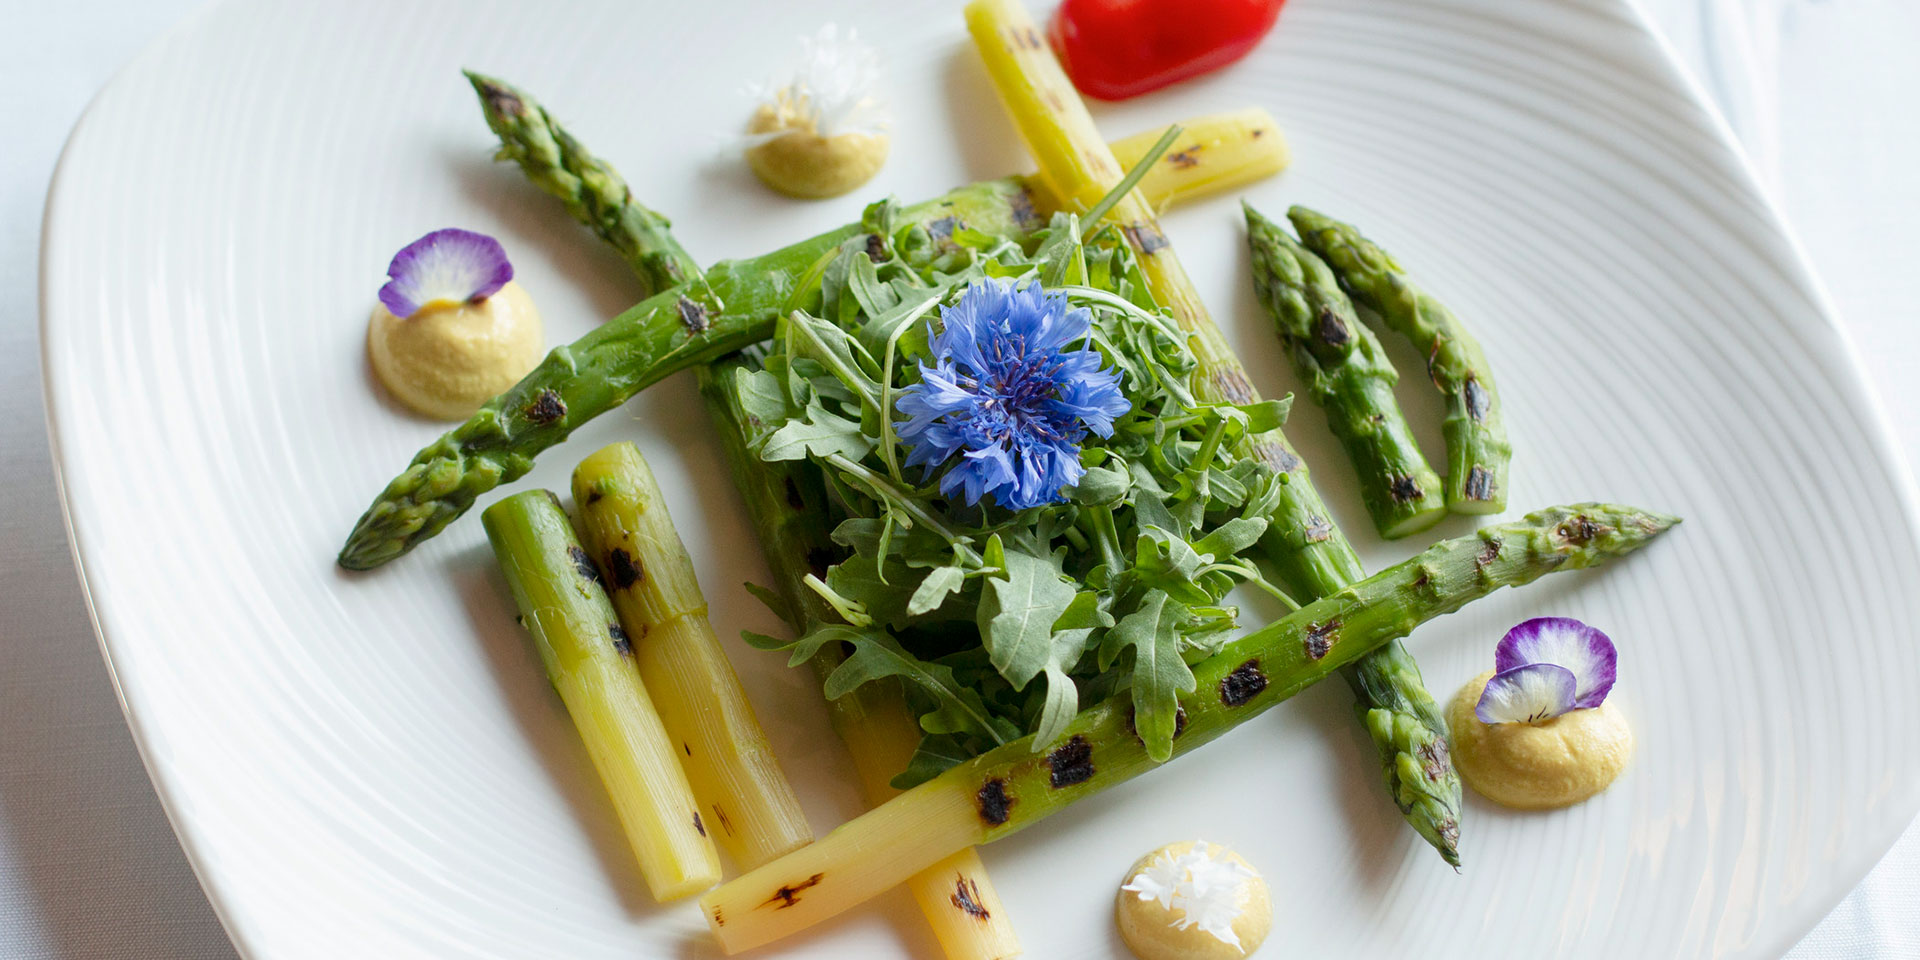 Guests can find Equilibrium Menu dishes at Romazzino Restaurant.